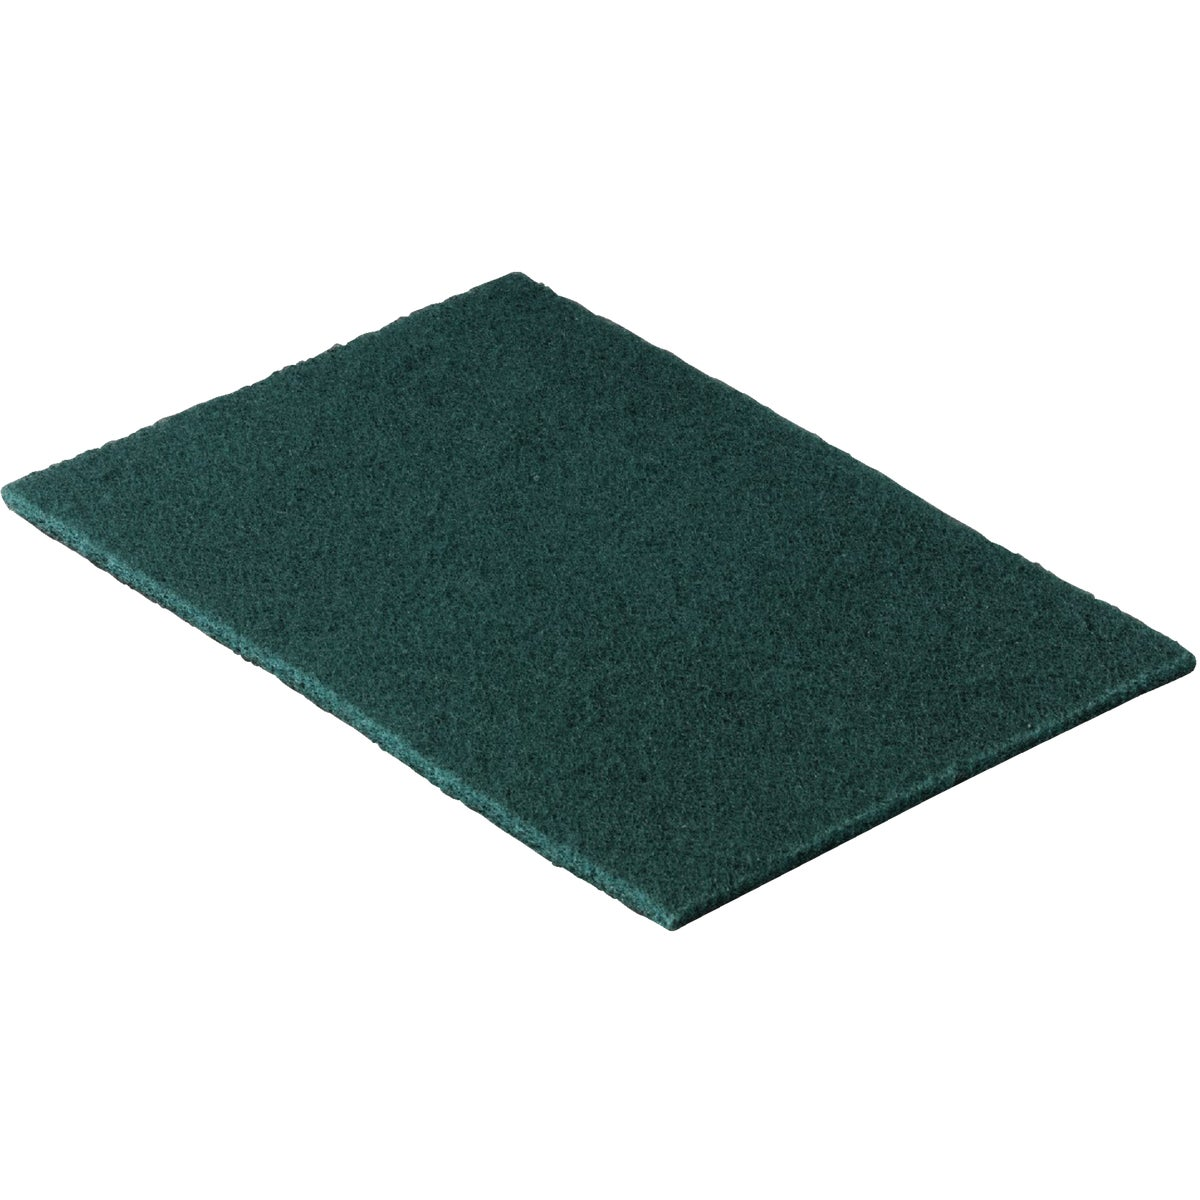 SCOTCH-BRITE PAD - 96 by 3m Co